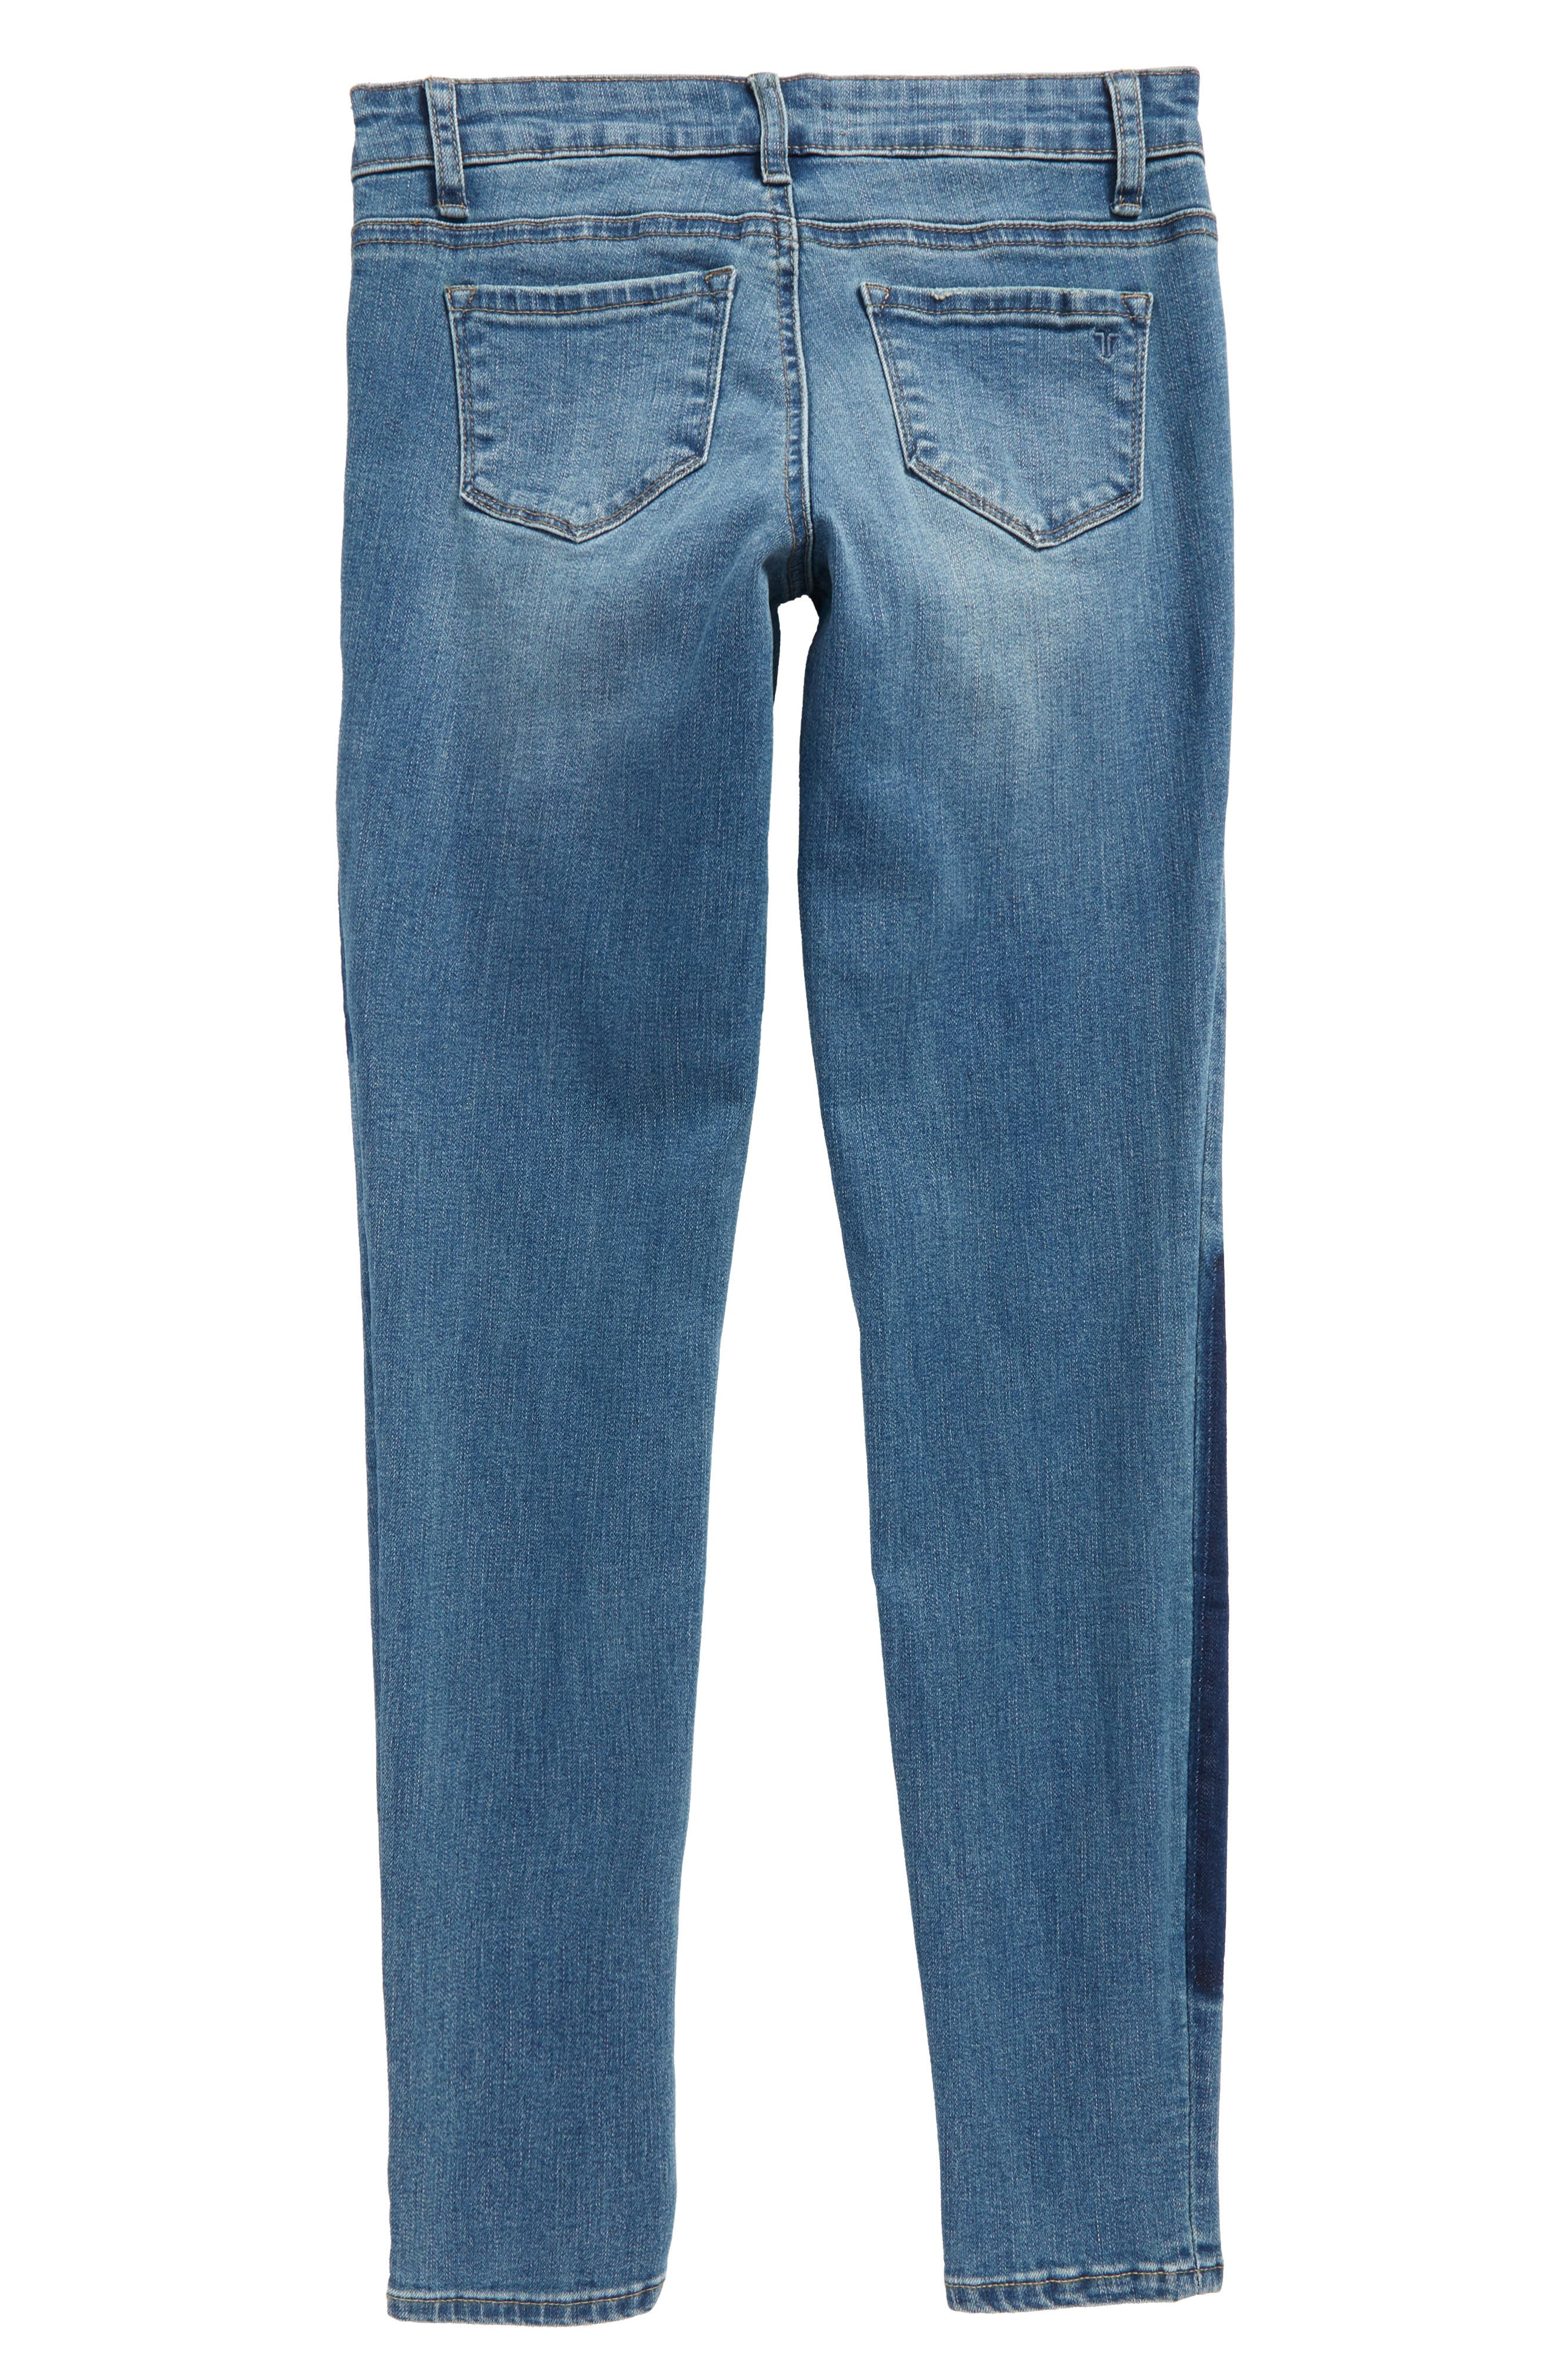 Patch Ankle Skinny Jeans,                             Alternate thumbnail 2, color,                             407